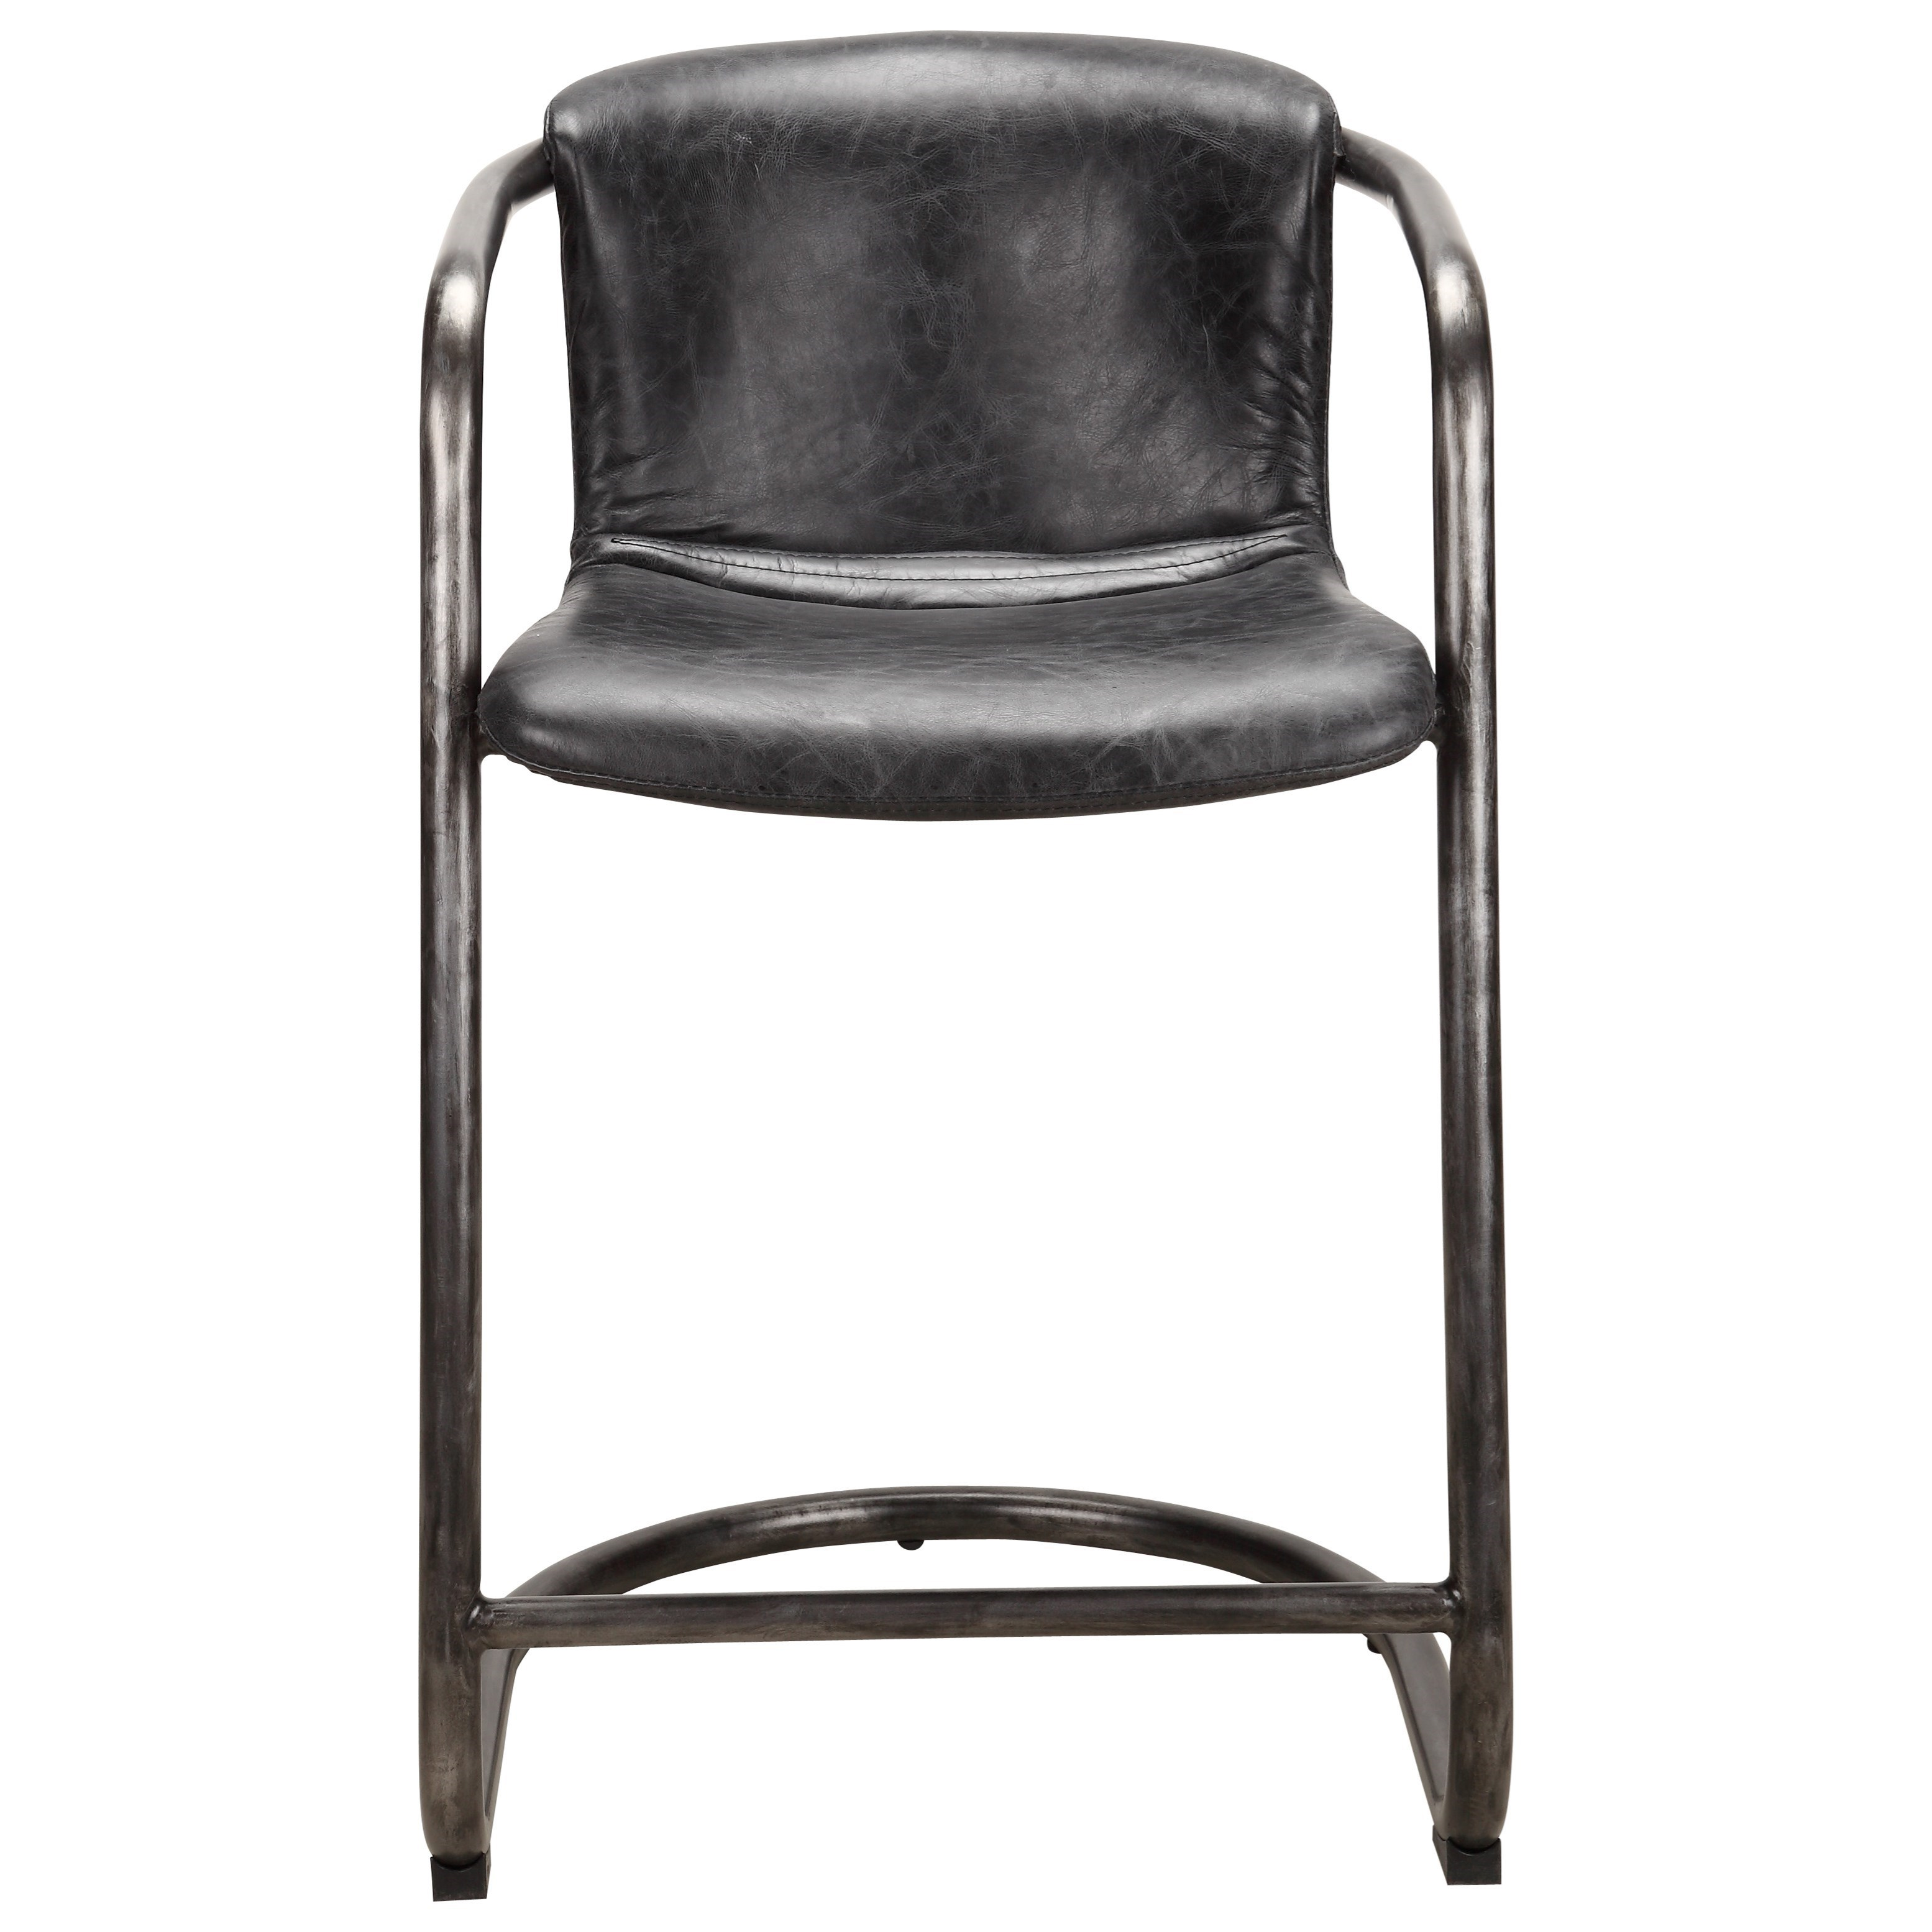 Dining Chairs Freeman Counter Stool by Moe's Home Collection at Stoney Creek Furniture